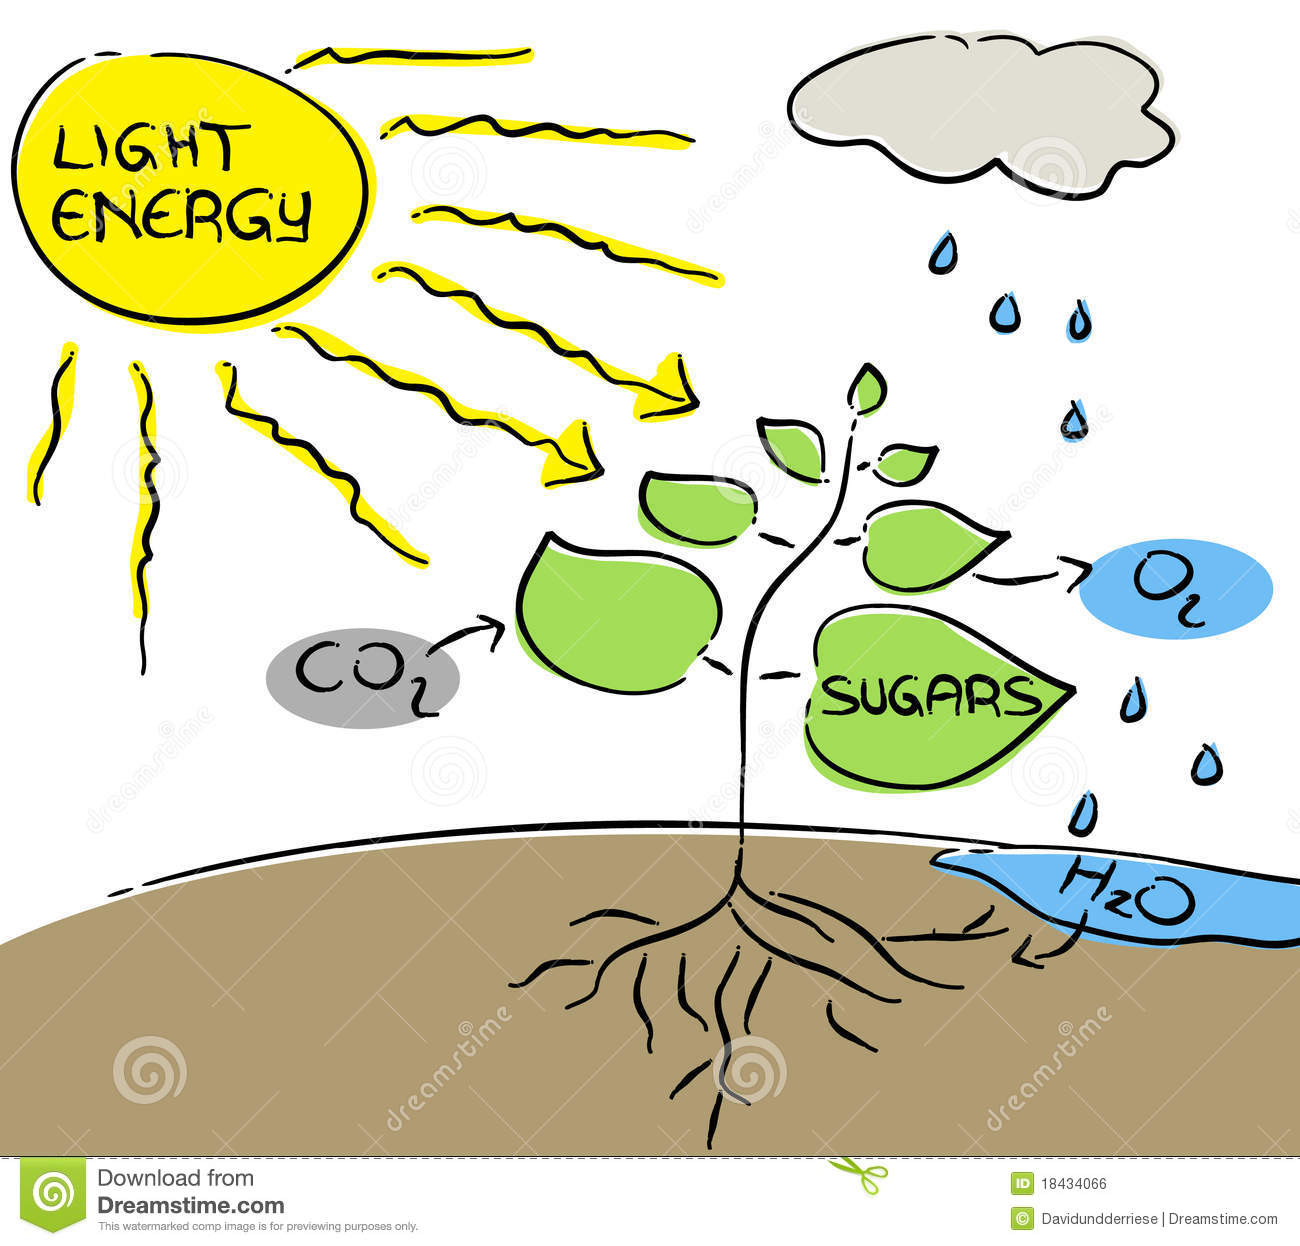 photosynthesis z scheme diagram opel astra h radio wiring stock vector illustration of life